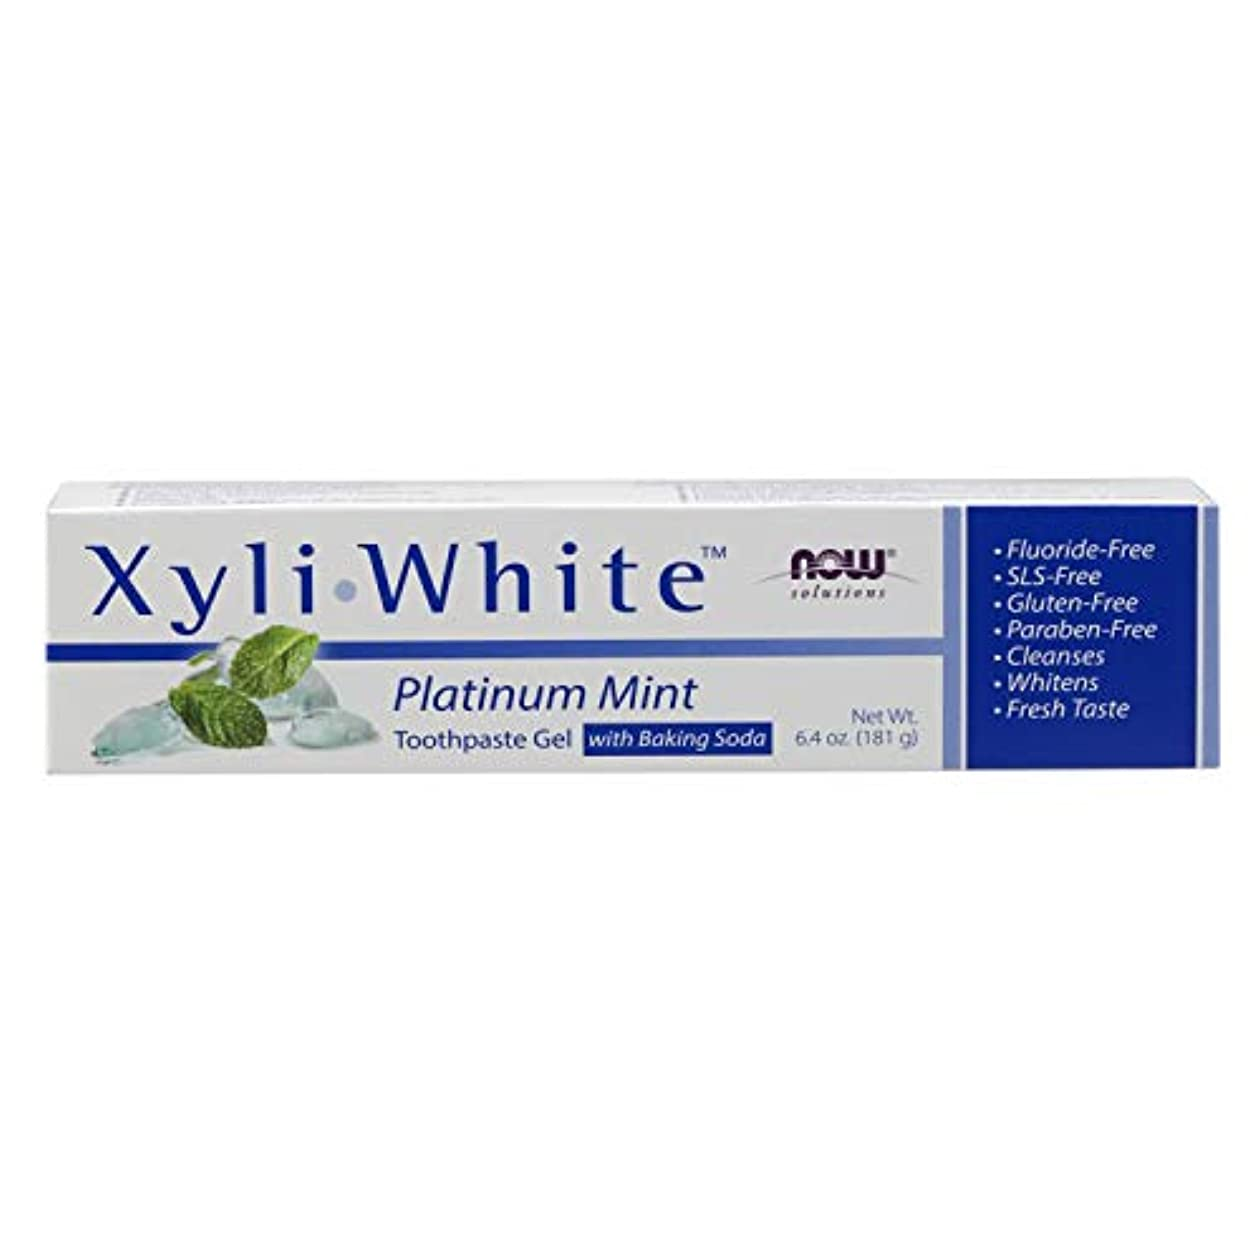 足首粘り強い酔って海外直送品 Now Foods Xyliwhite Platinum Mint with Baking Soda Toothpaste, 6.4 Oz